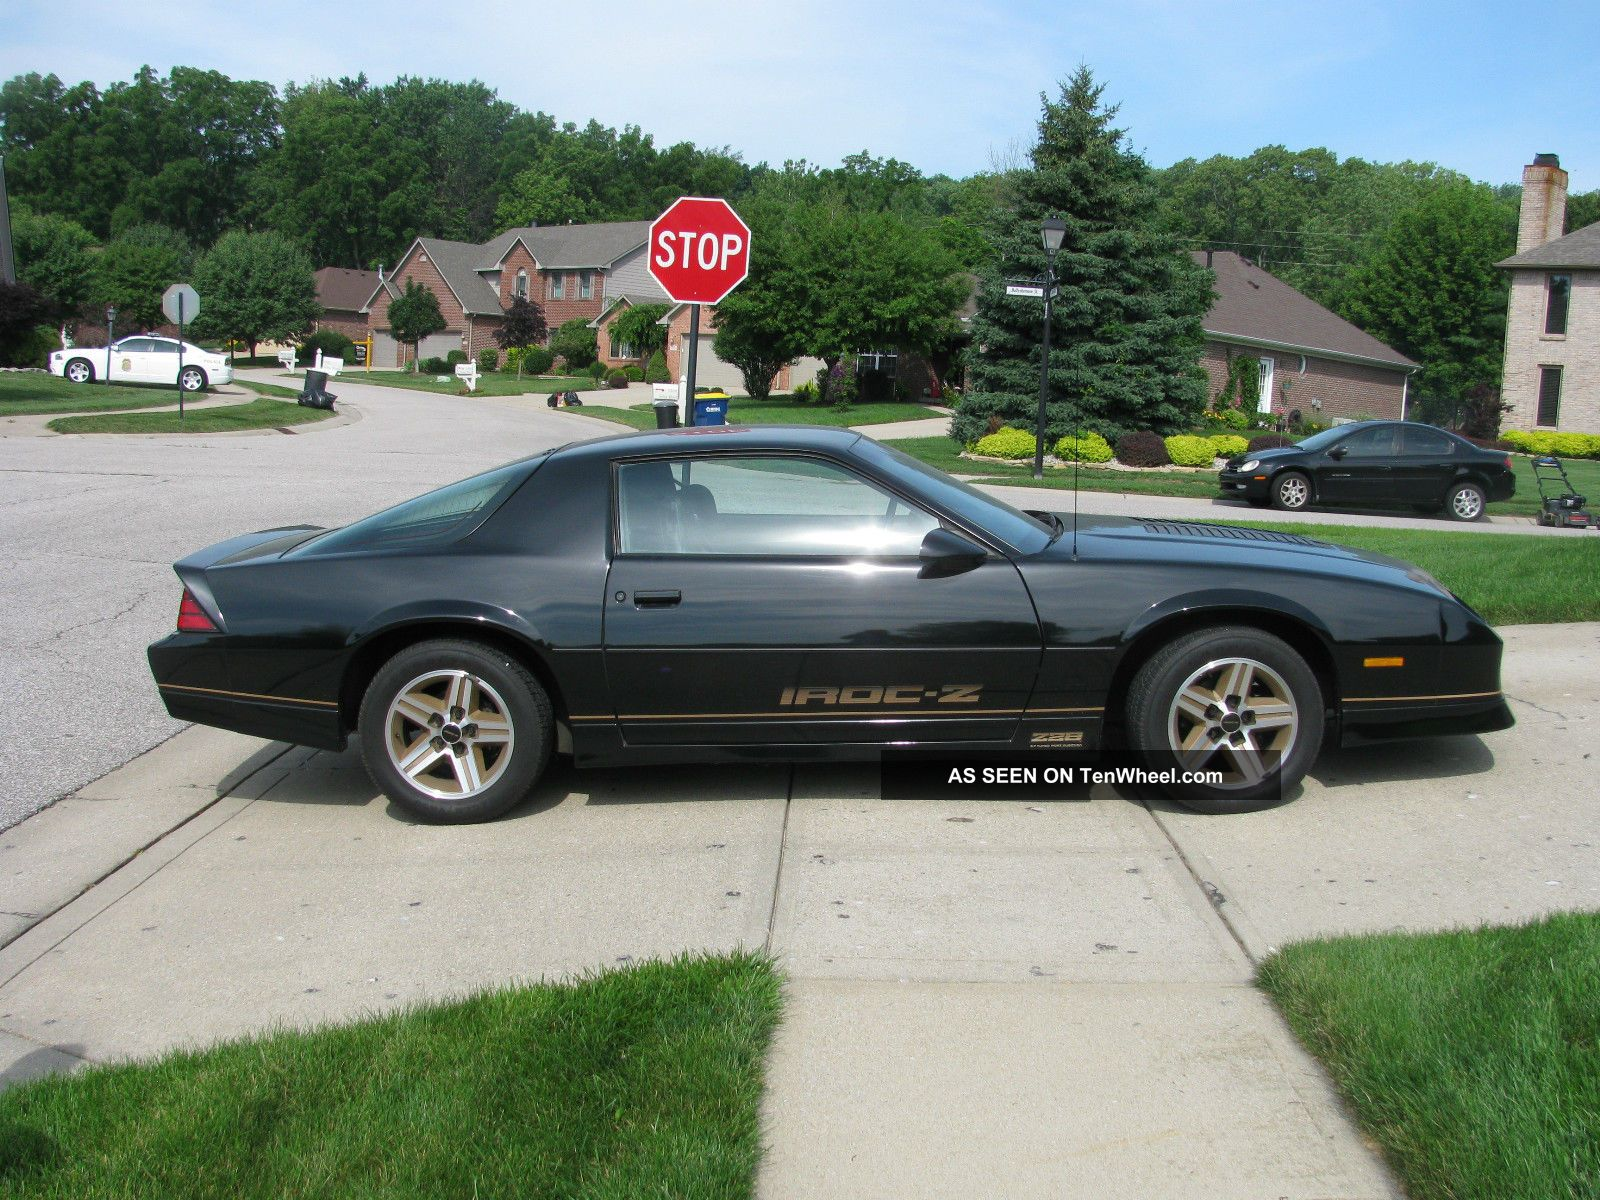 1987 chevrolet camaro iroc z28 5 7 sports coupe. Black Bedroom Furniture Sets. Home Design Ideas